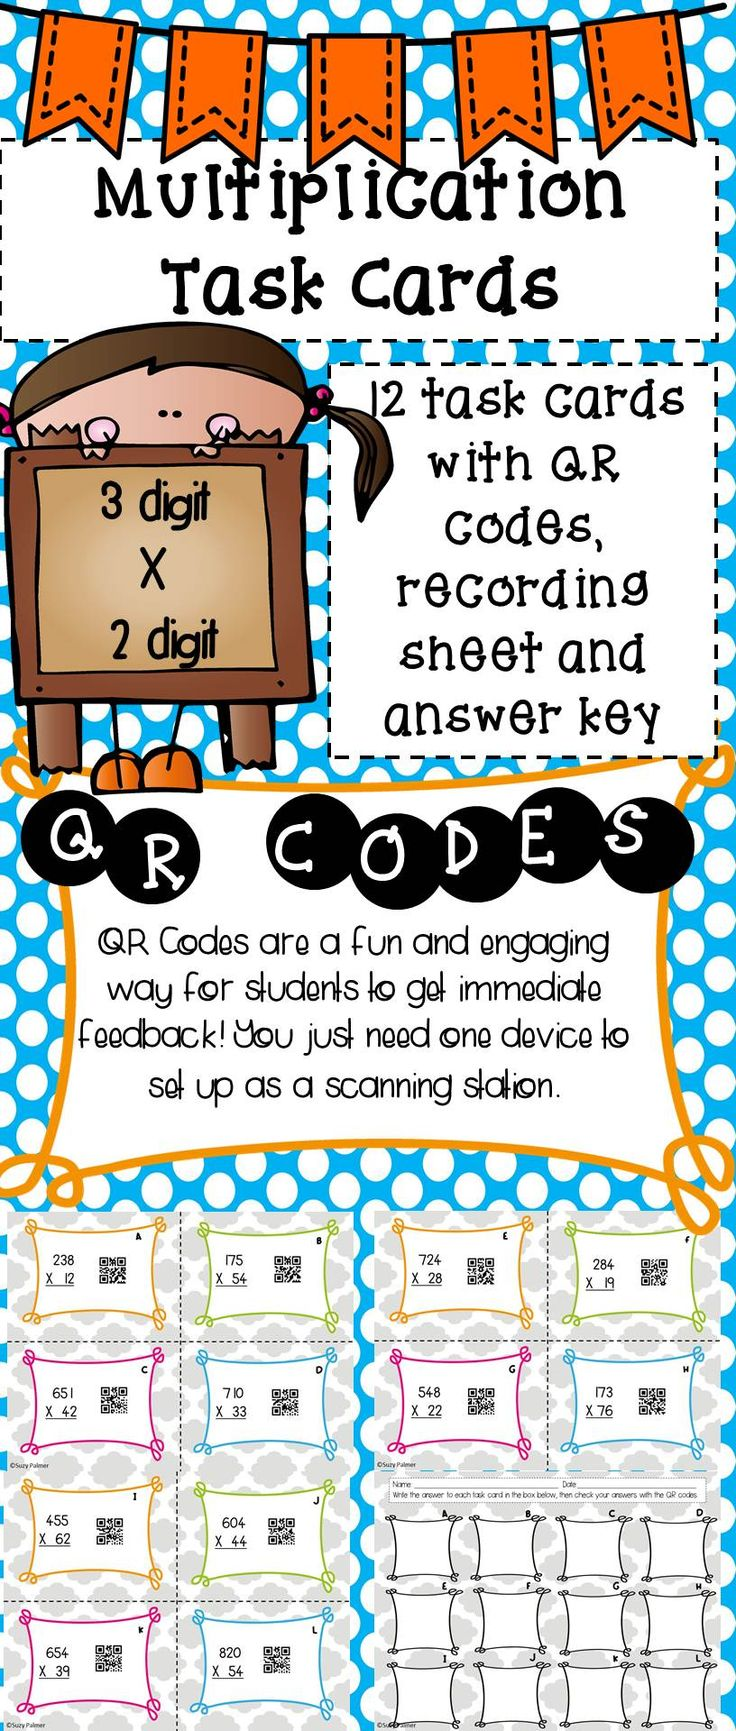 Students can practice 3 digit x 2 digit multiplication with these task cards. Set them up as a math station or for review all year long. Kids will love scanning the QR codes to get the answers and you'll love the immediate feedback they get.